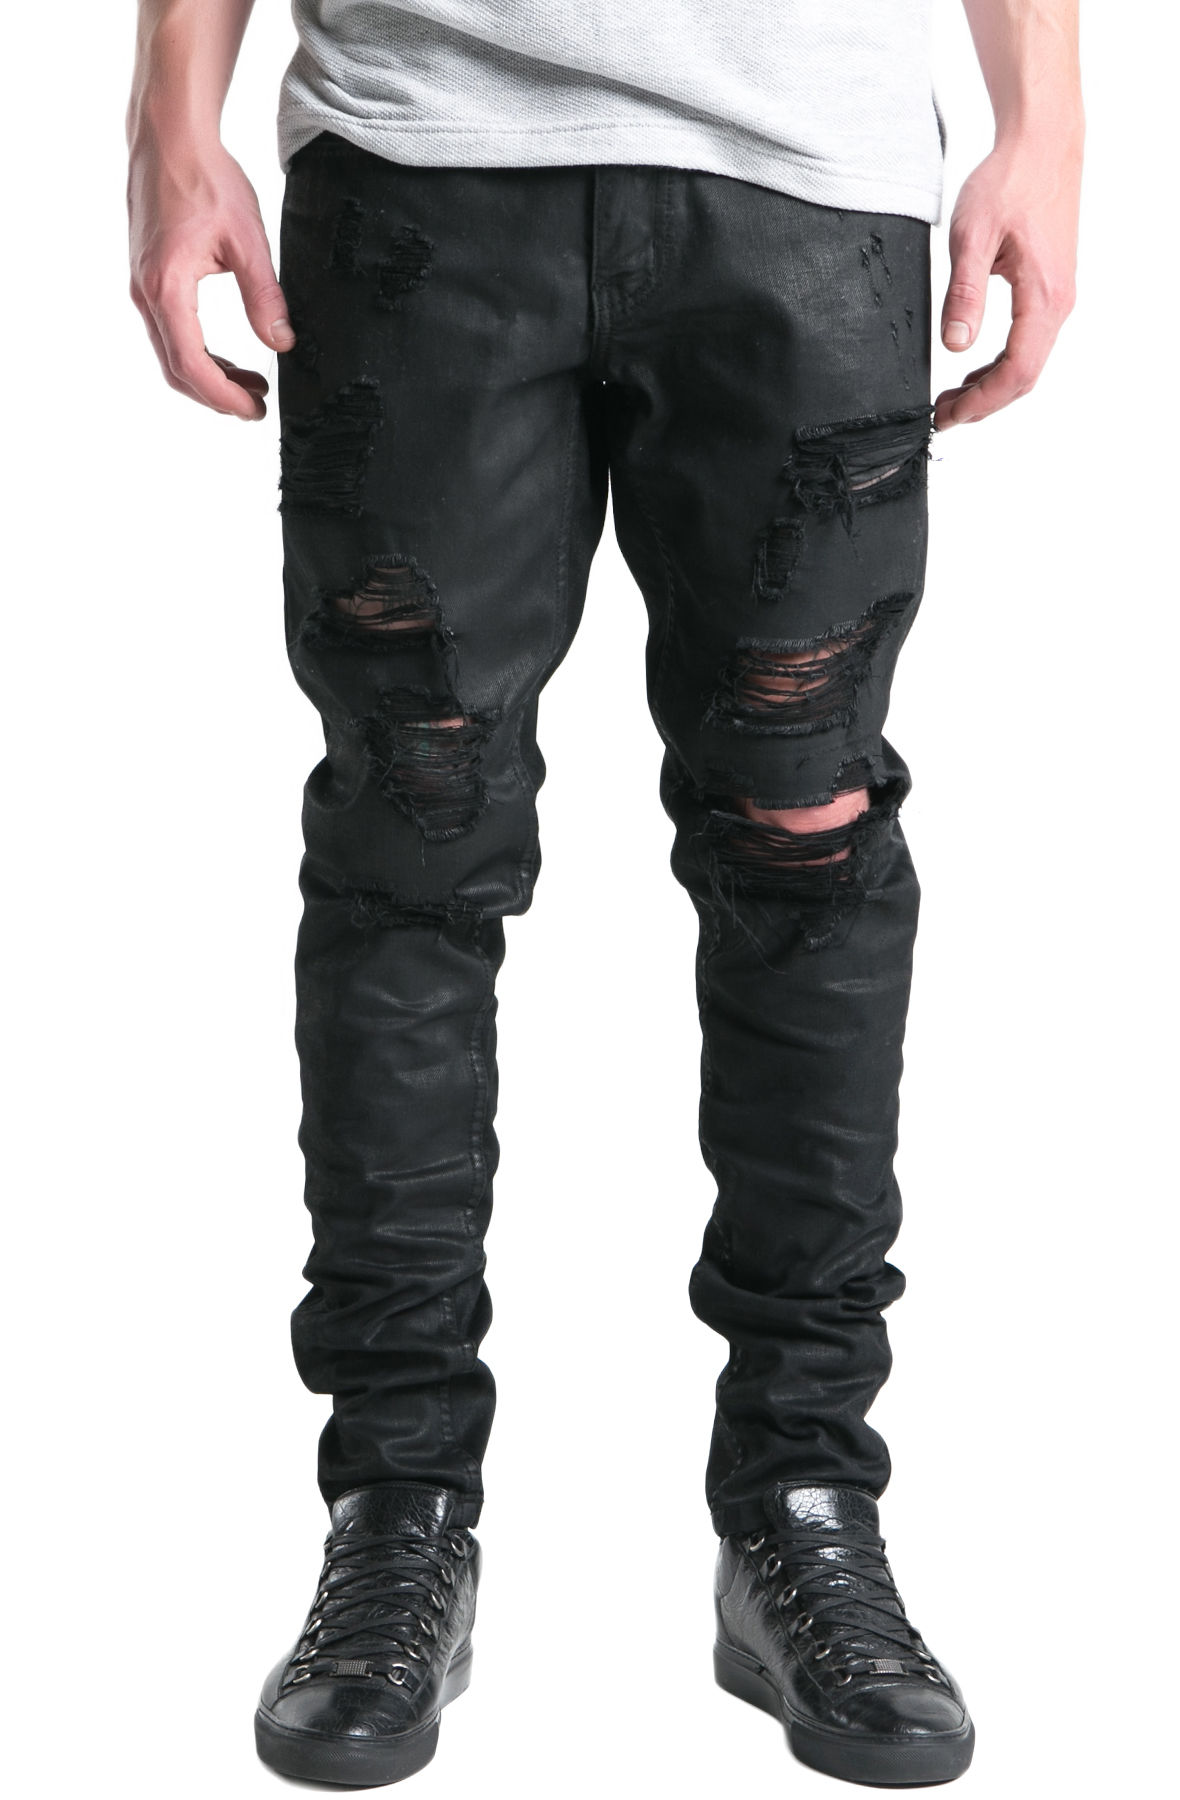 Image of The Phantom Ripped Standard Denim Jeans in Black Wax